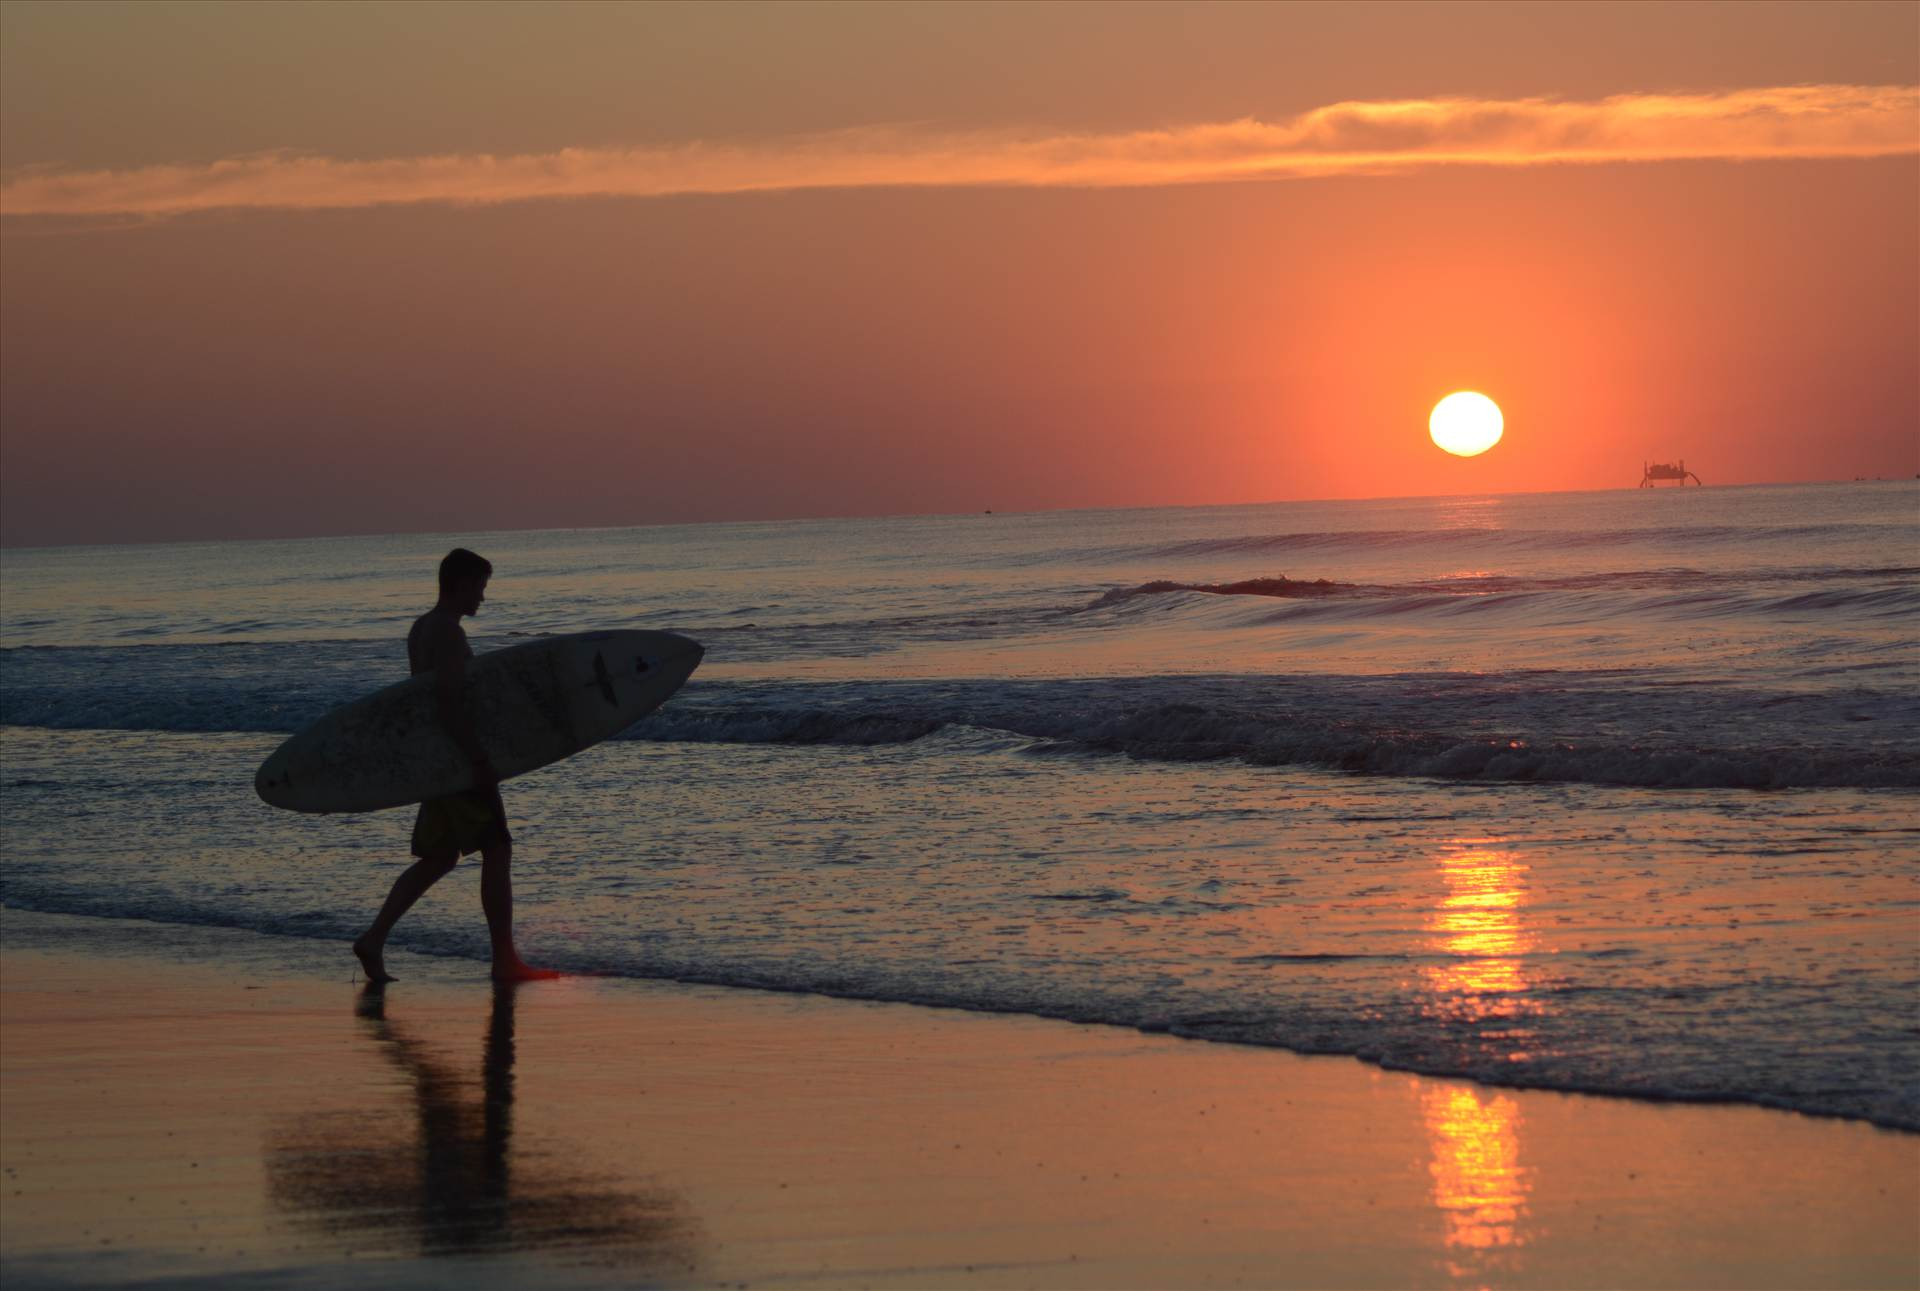 sunrise surfer.jpg undefined by WPC-372